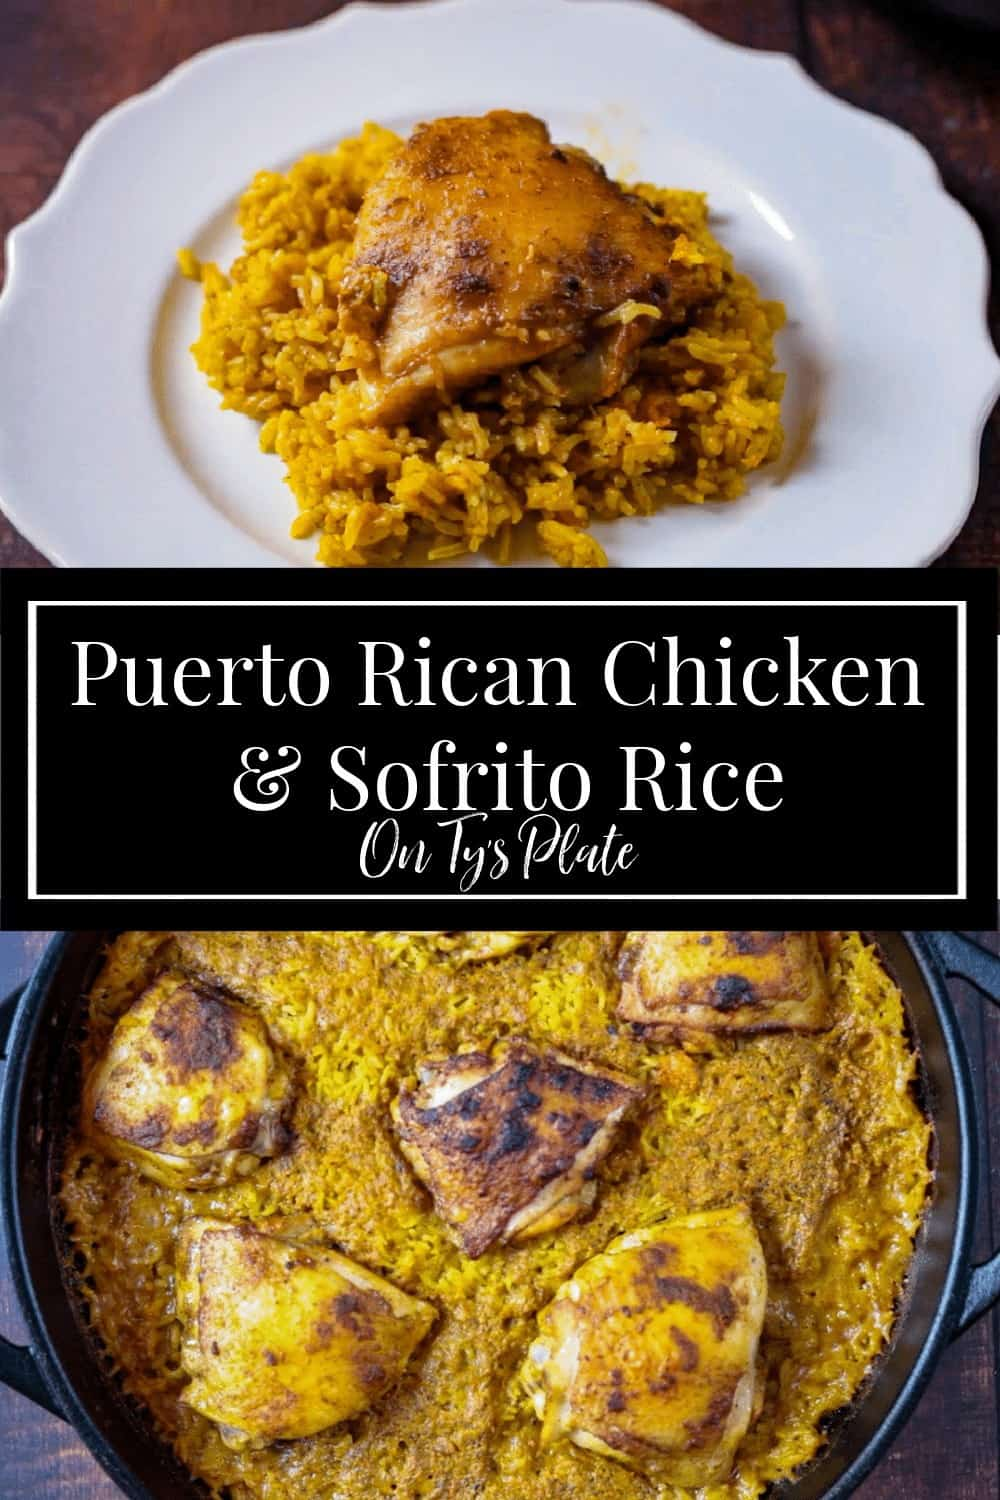 Puerto Rican Chicken and Sofrito Ric